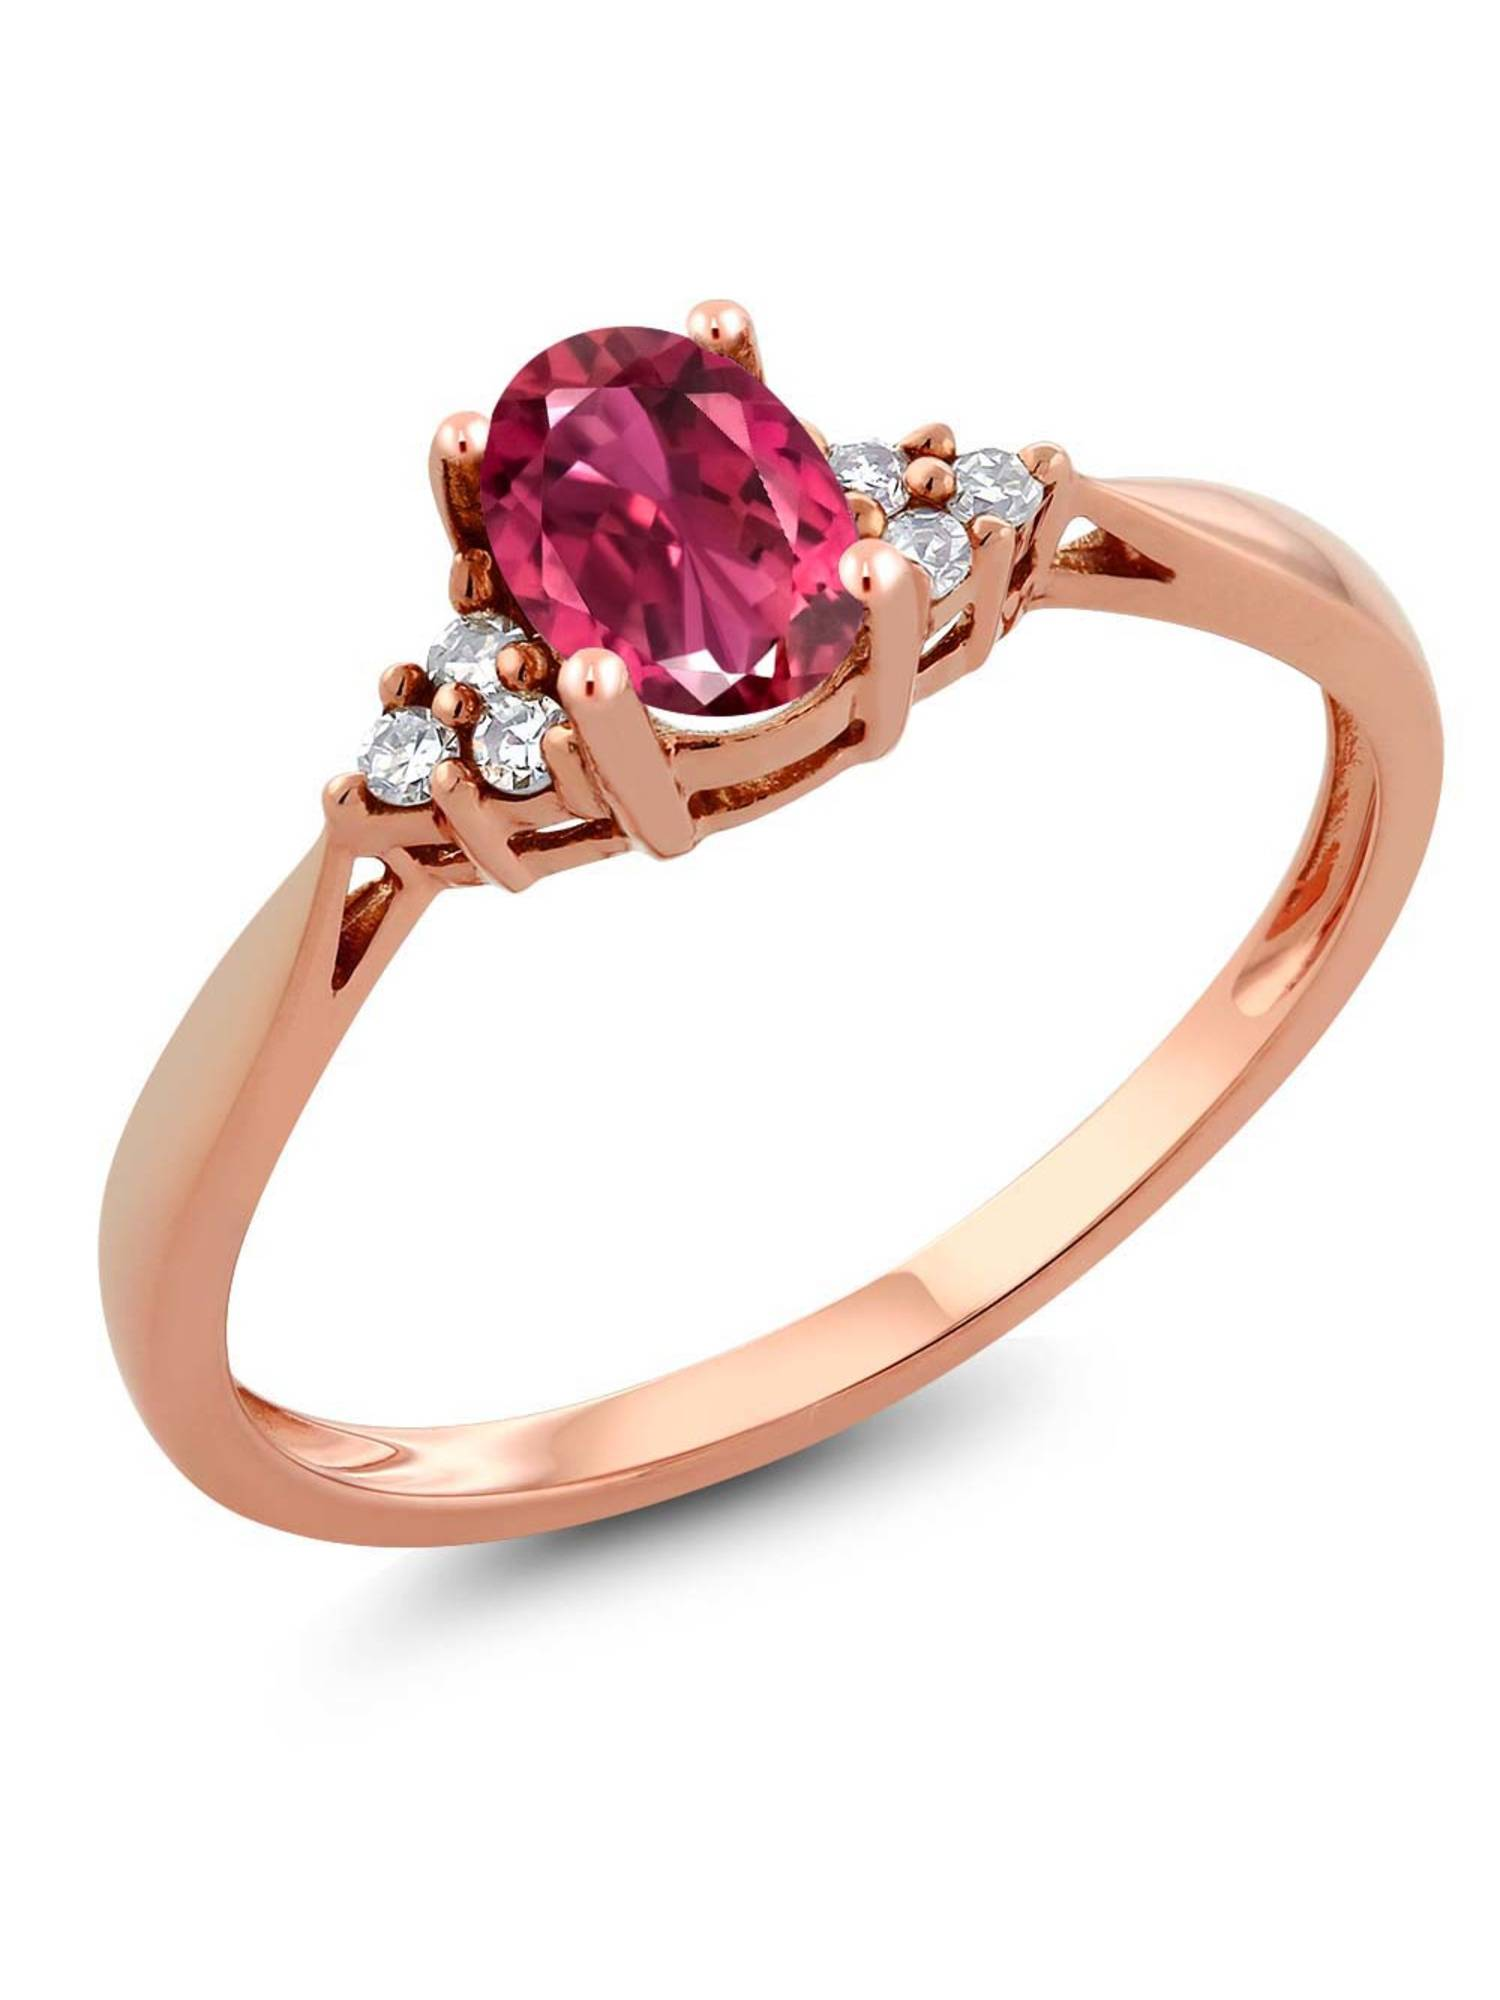 Women's 14K Rose Gold Pink Tourmaline and Diamond Ring by